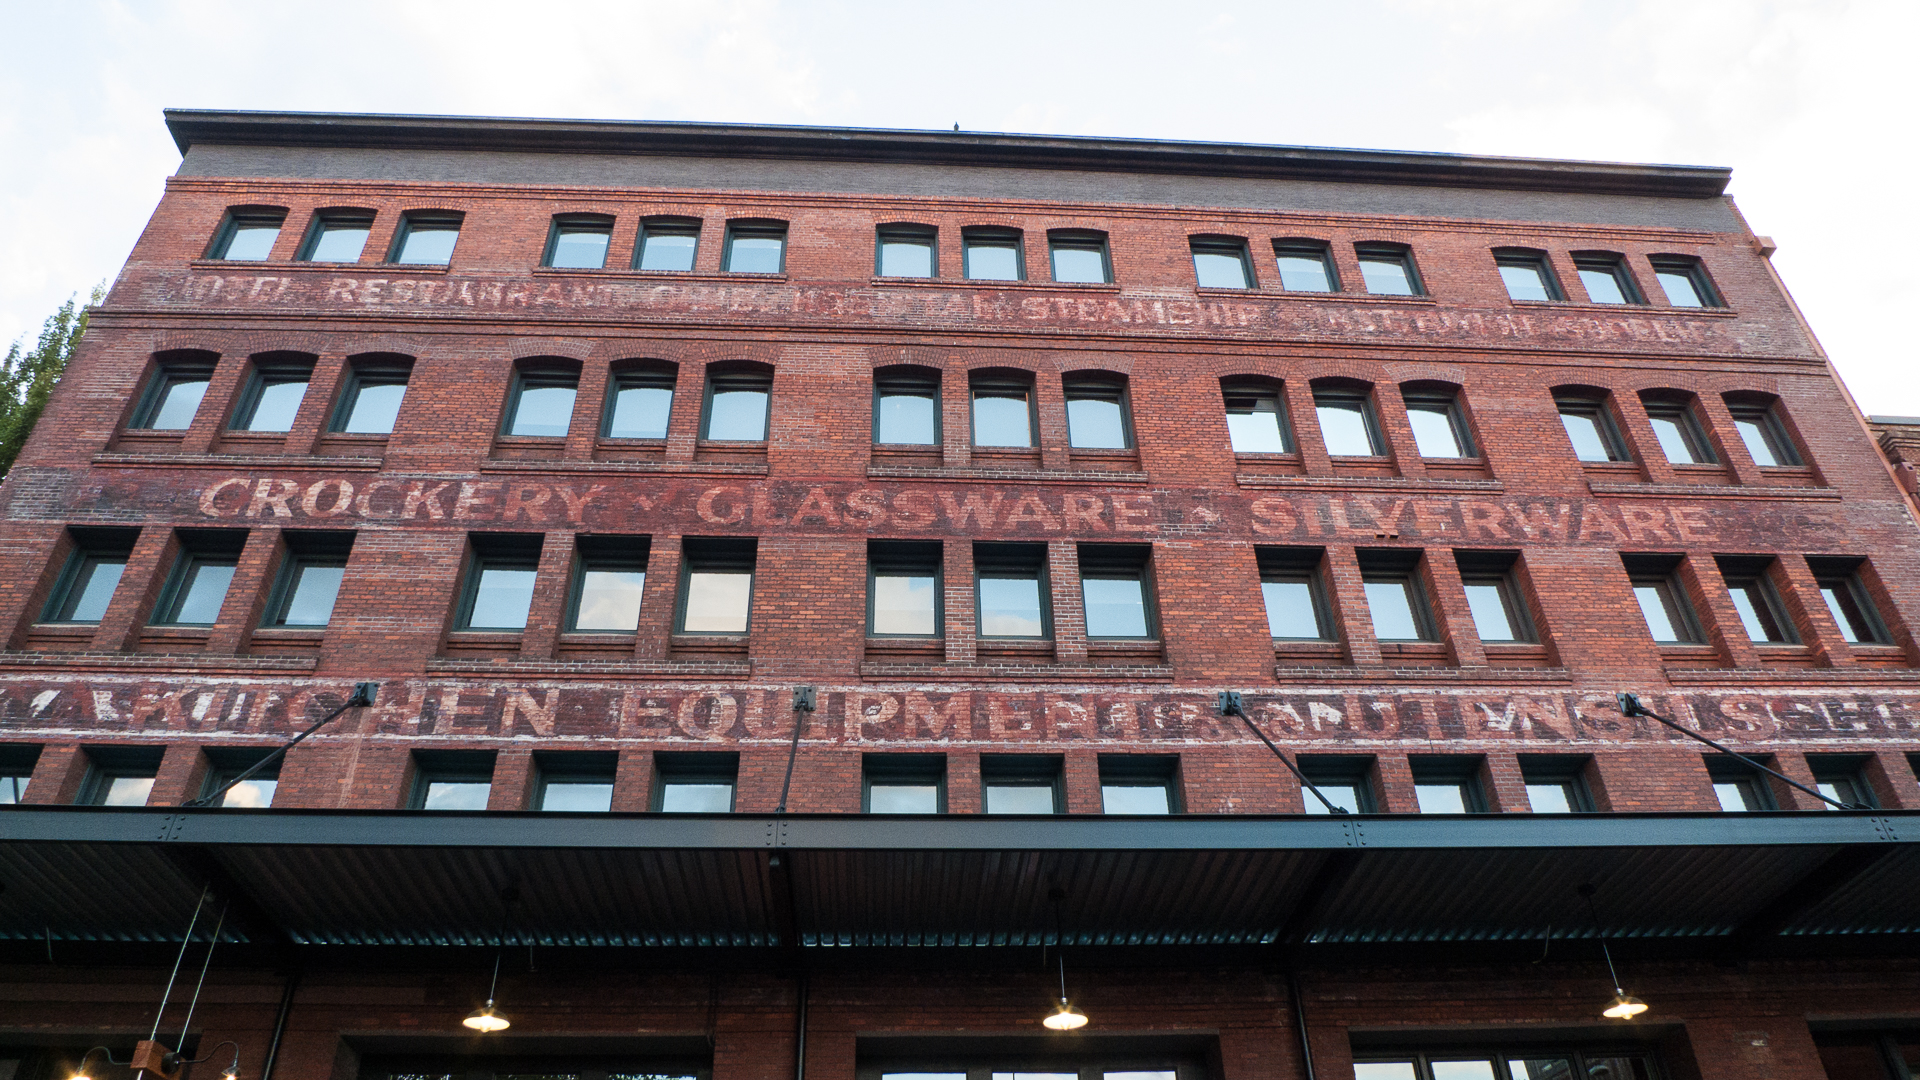 Some of the interesting buildings in downtown Portland.